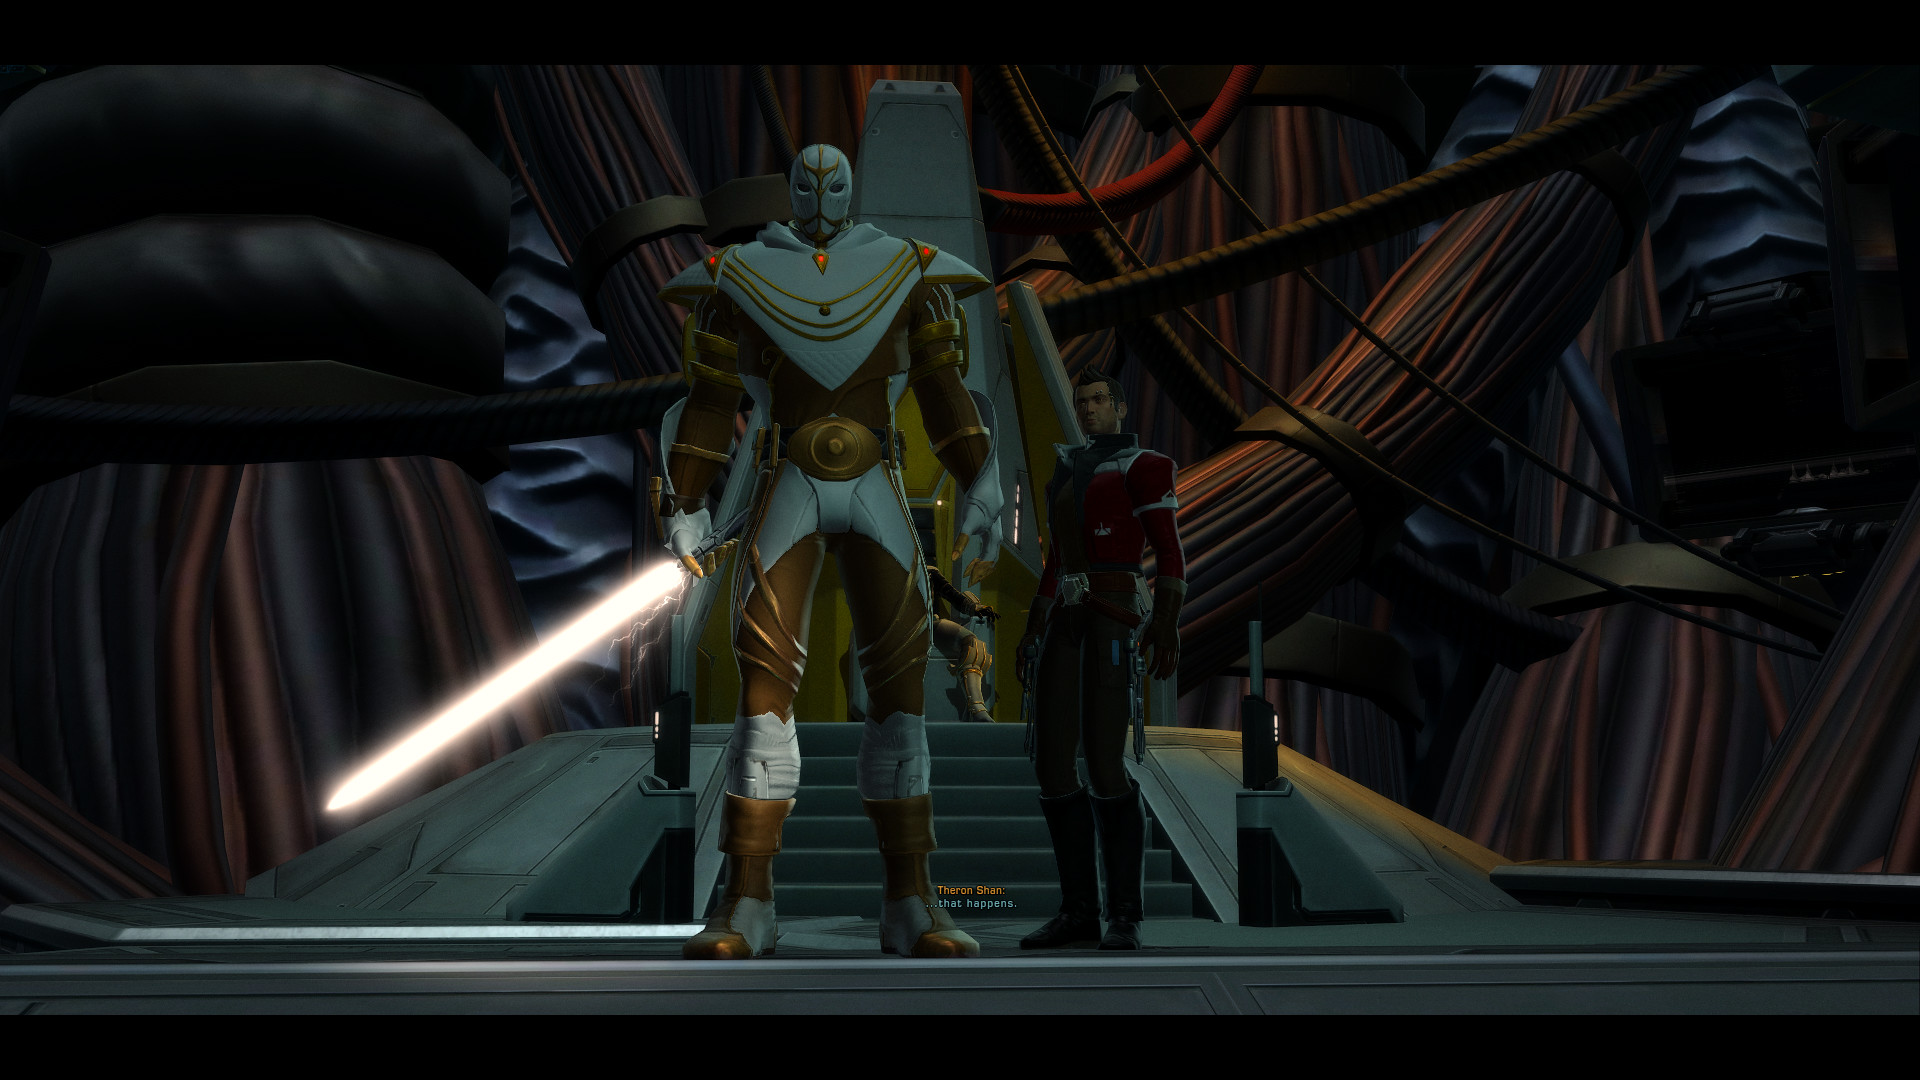 SWTOR Jedi Knight from beginning to Iokath